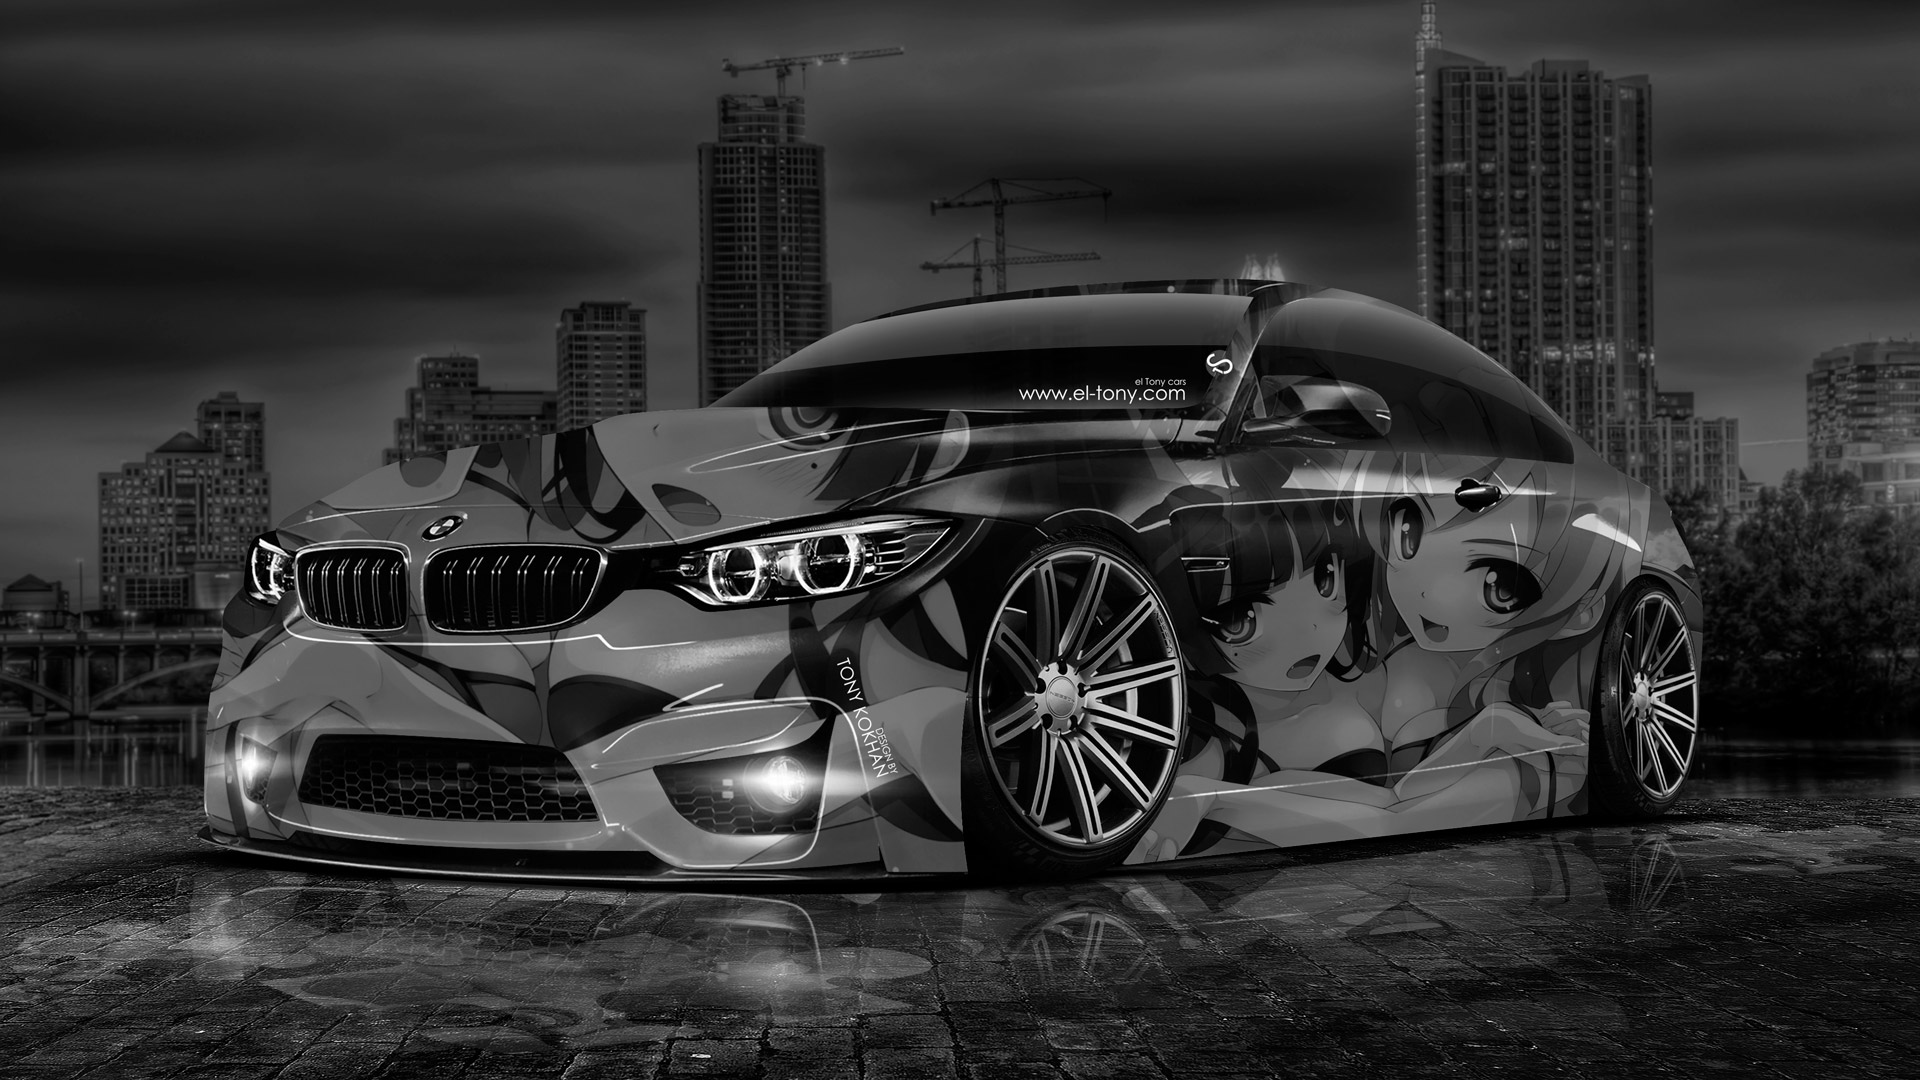 Wonderful Bmw M4 Wallpaper Collection 40. New Wallpapers With Your Favorite